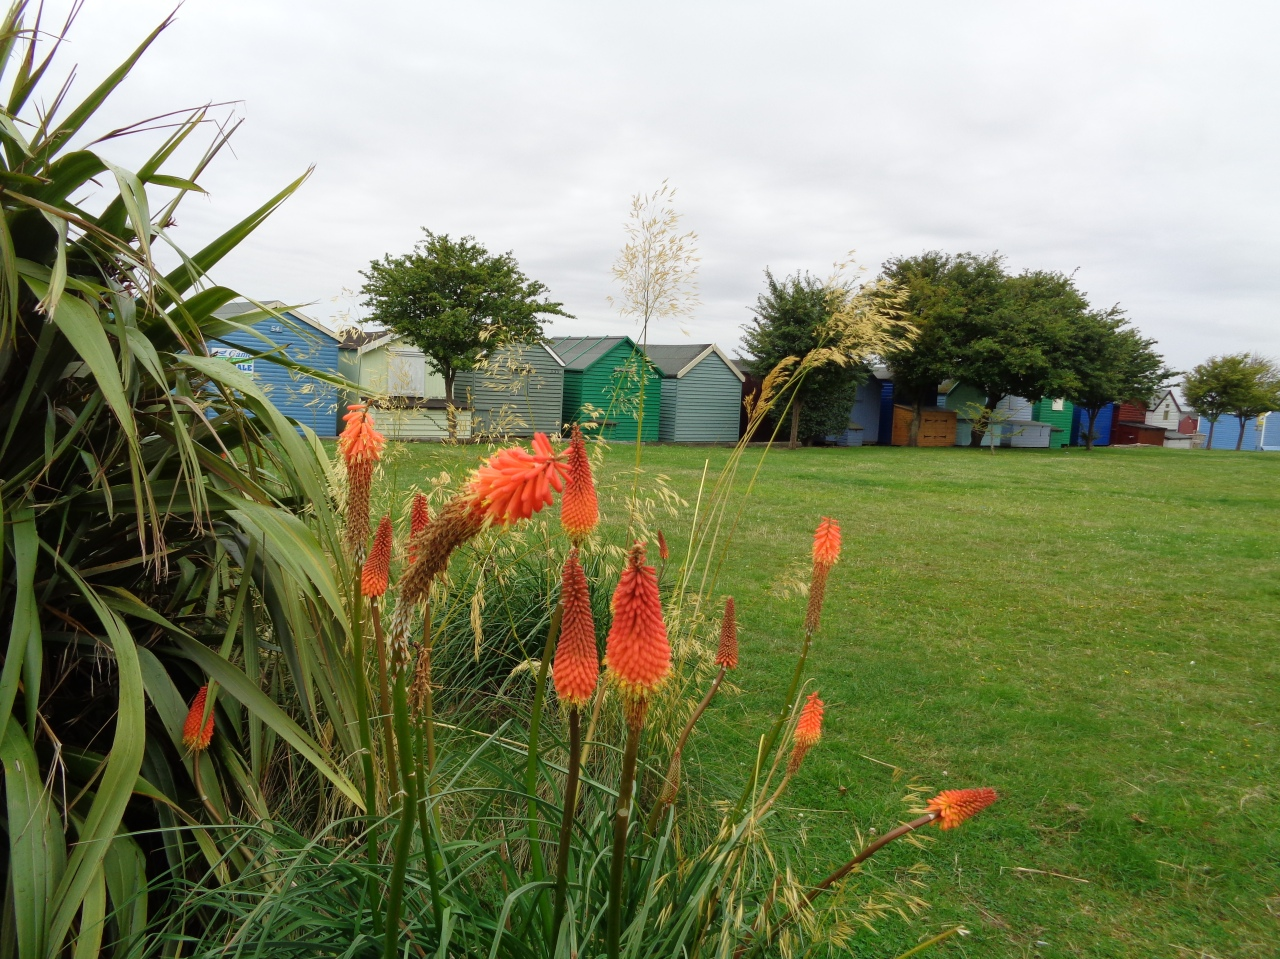 Mersea Island, red hot pokers and beach huts